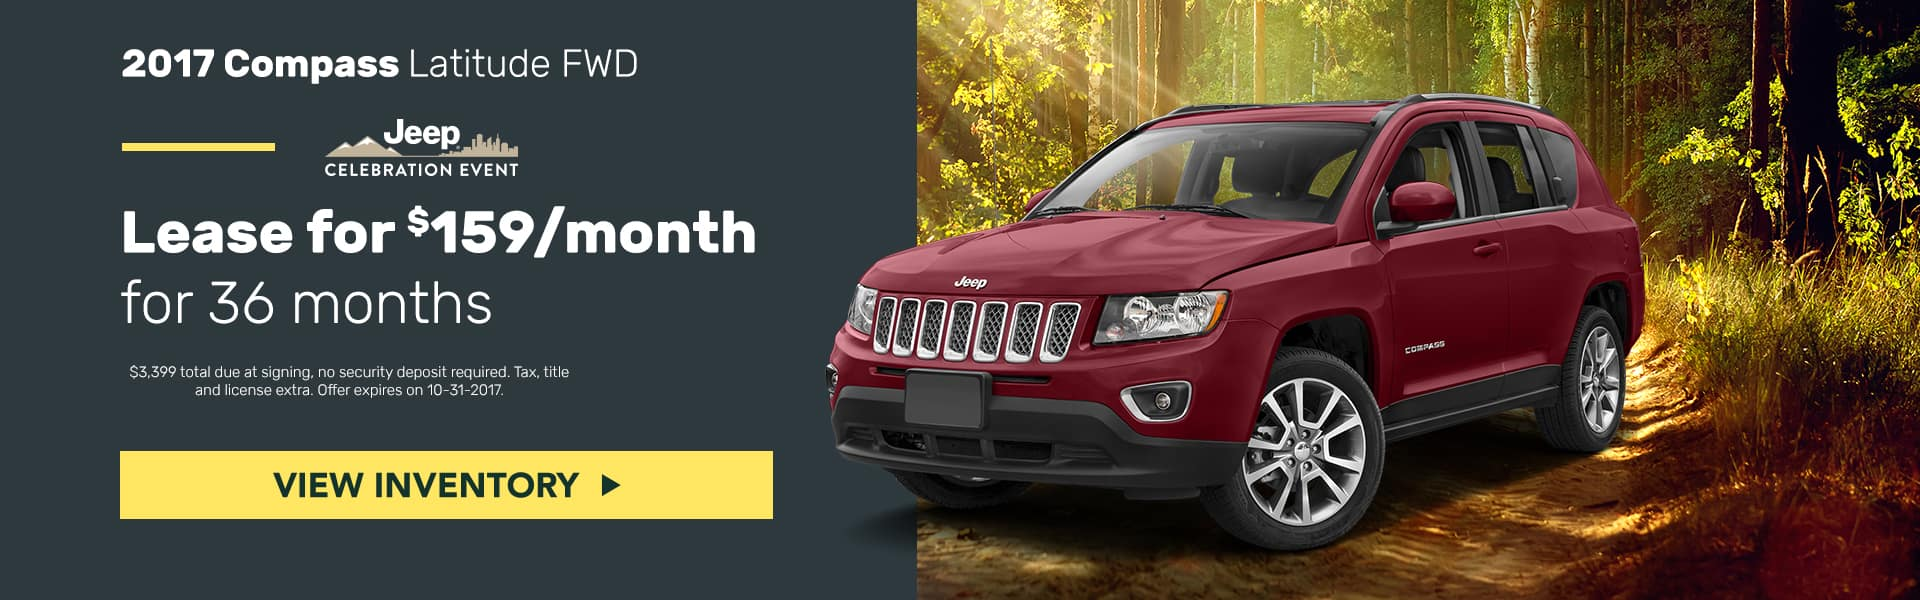 Jeep Compass October Mancari's